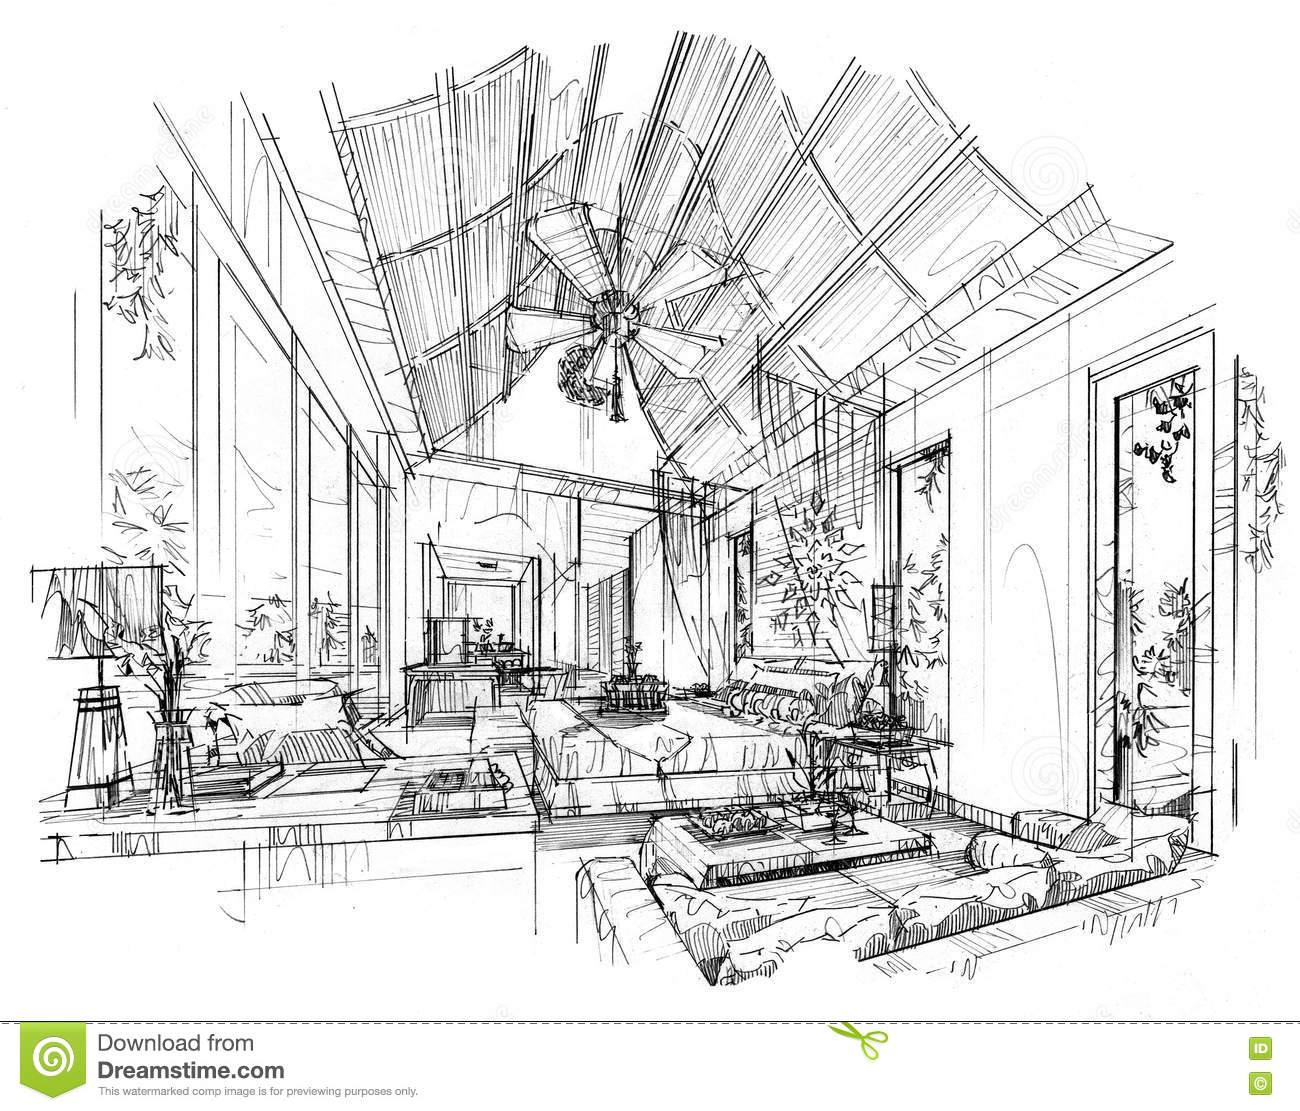 Bedroom drawing with color - Sketch Interior Perspective Bedroom Black And White Interior Design Stock Images